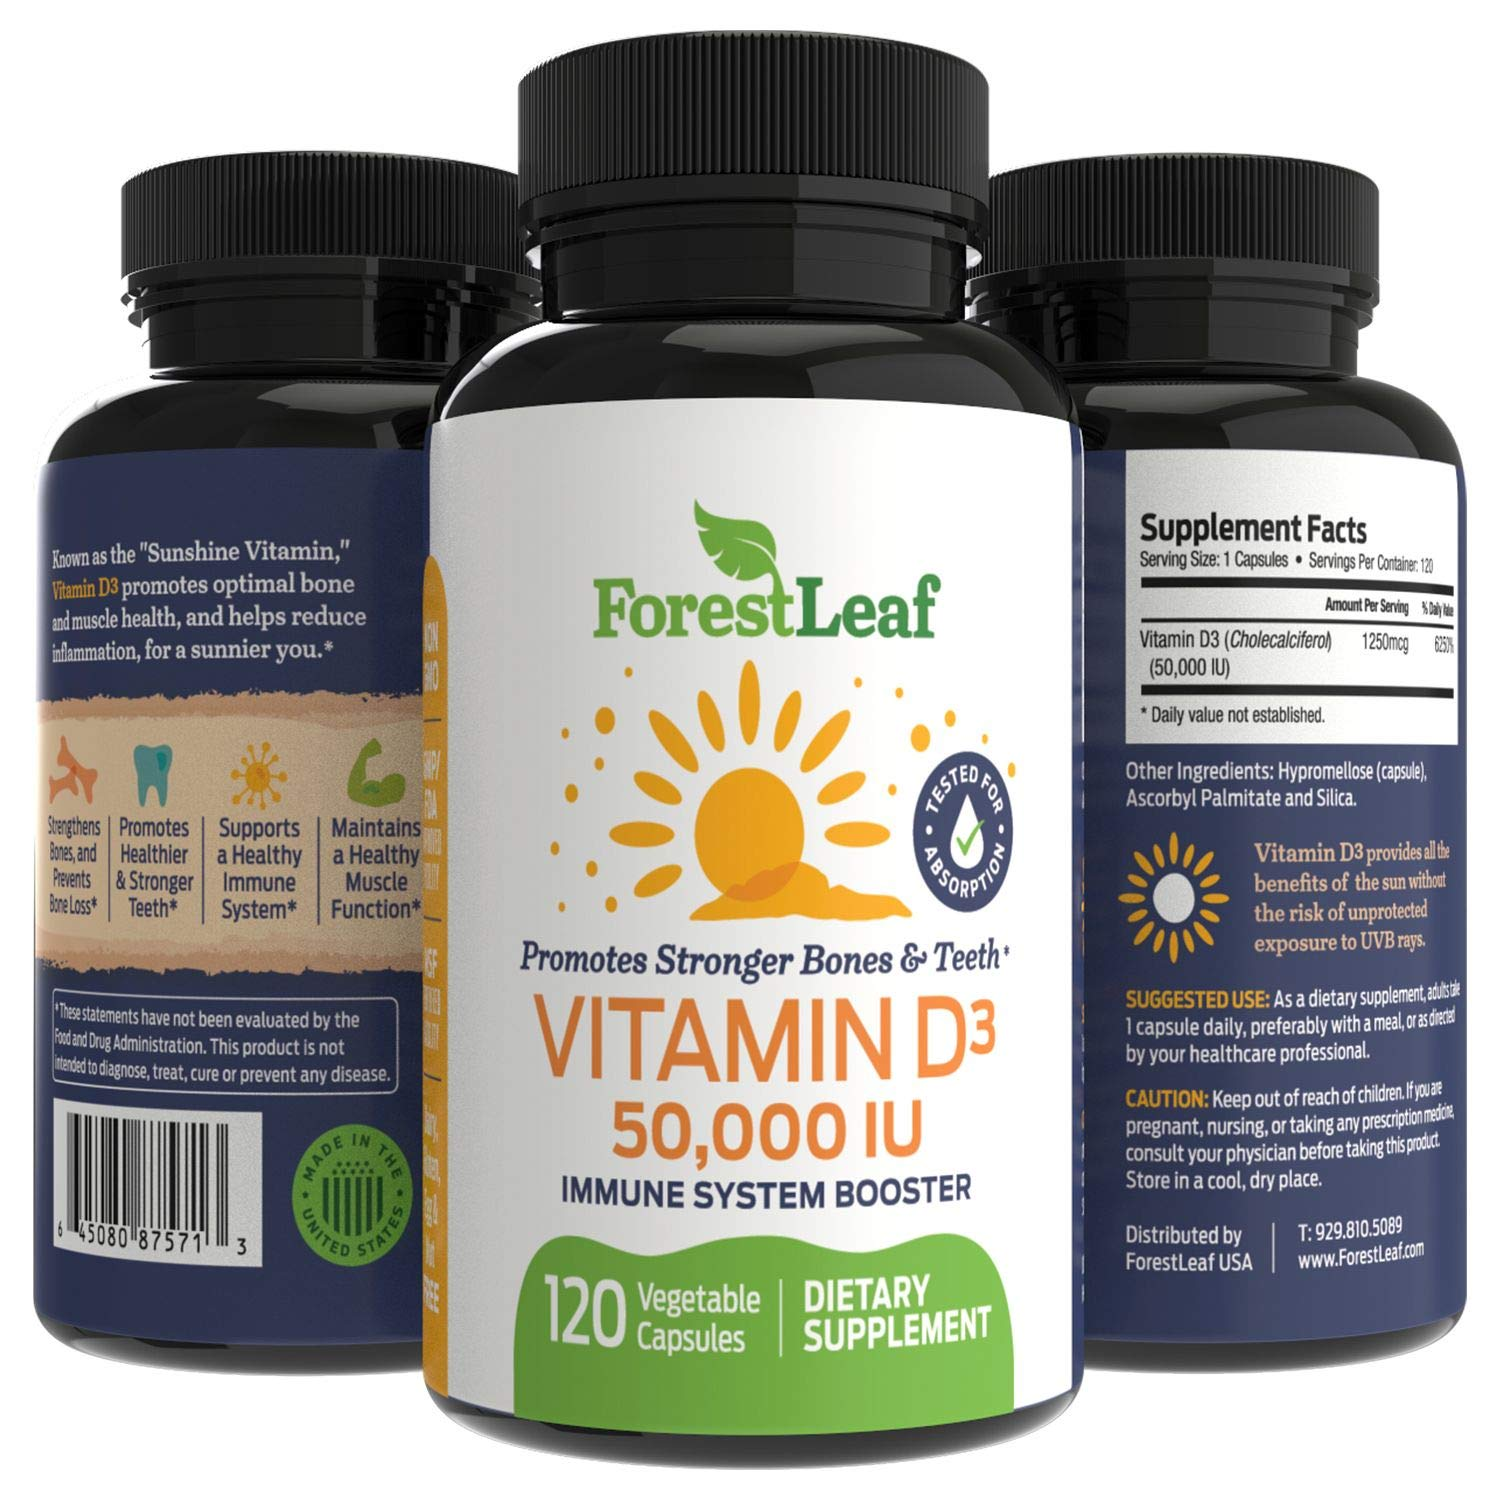 Vitamin D3 50,000 IU Weekly Supplement - 120 Vegetable Capsules - Helps Boost and Strengthen Bones, Teeth, Immune System and Muscle Function - by ForestLeaf by ForestLeaf